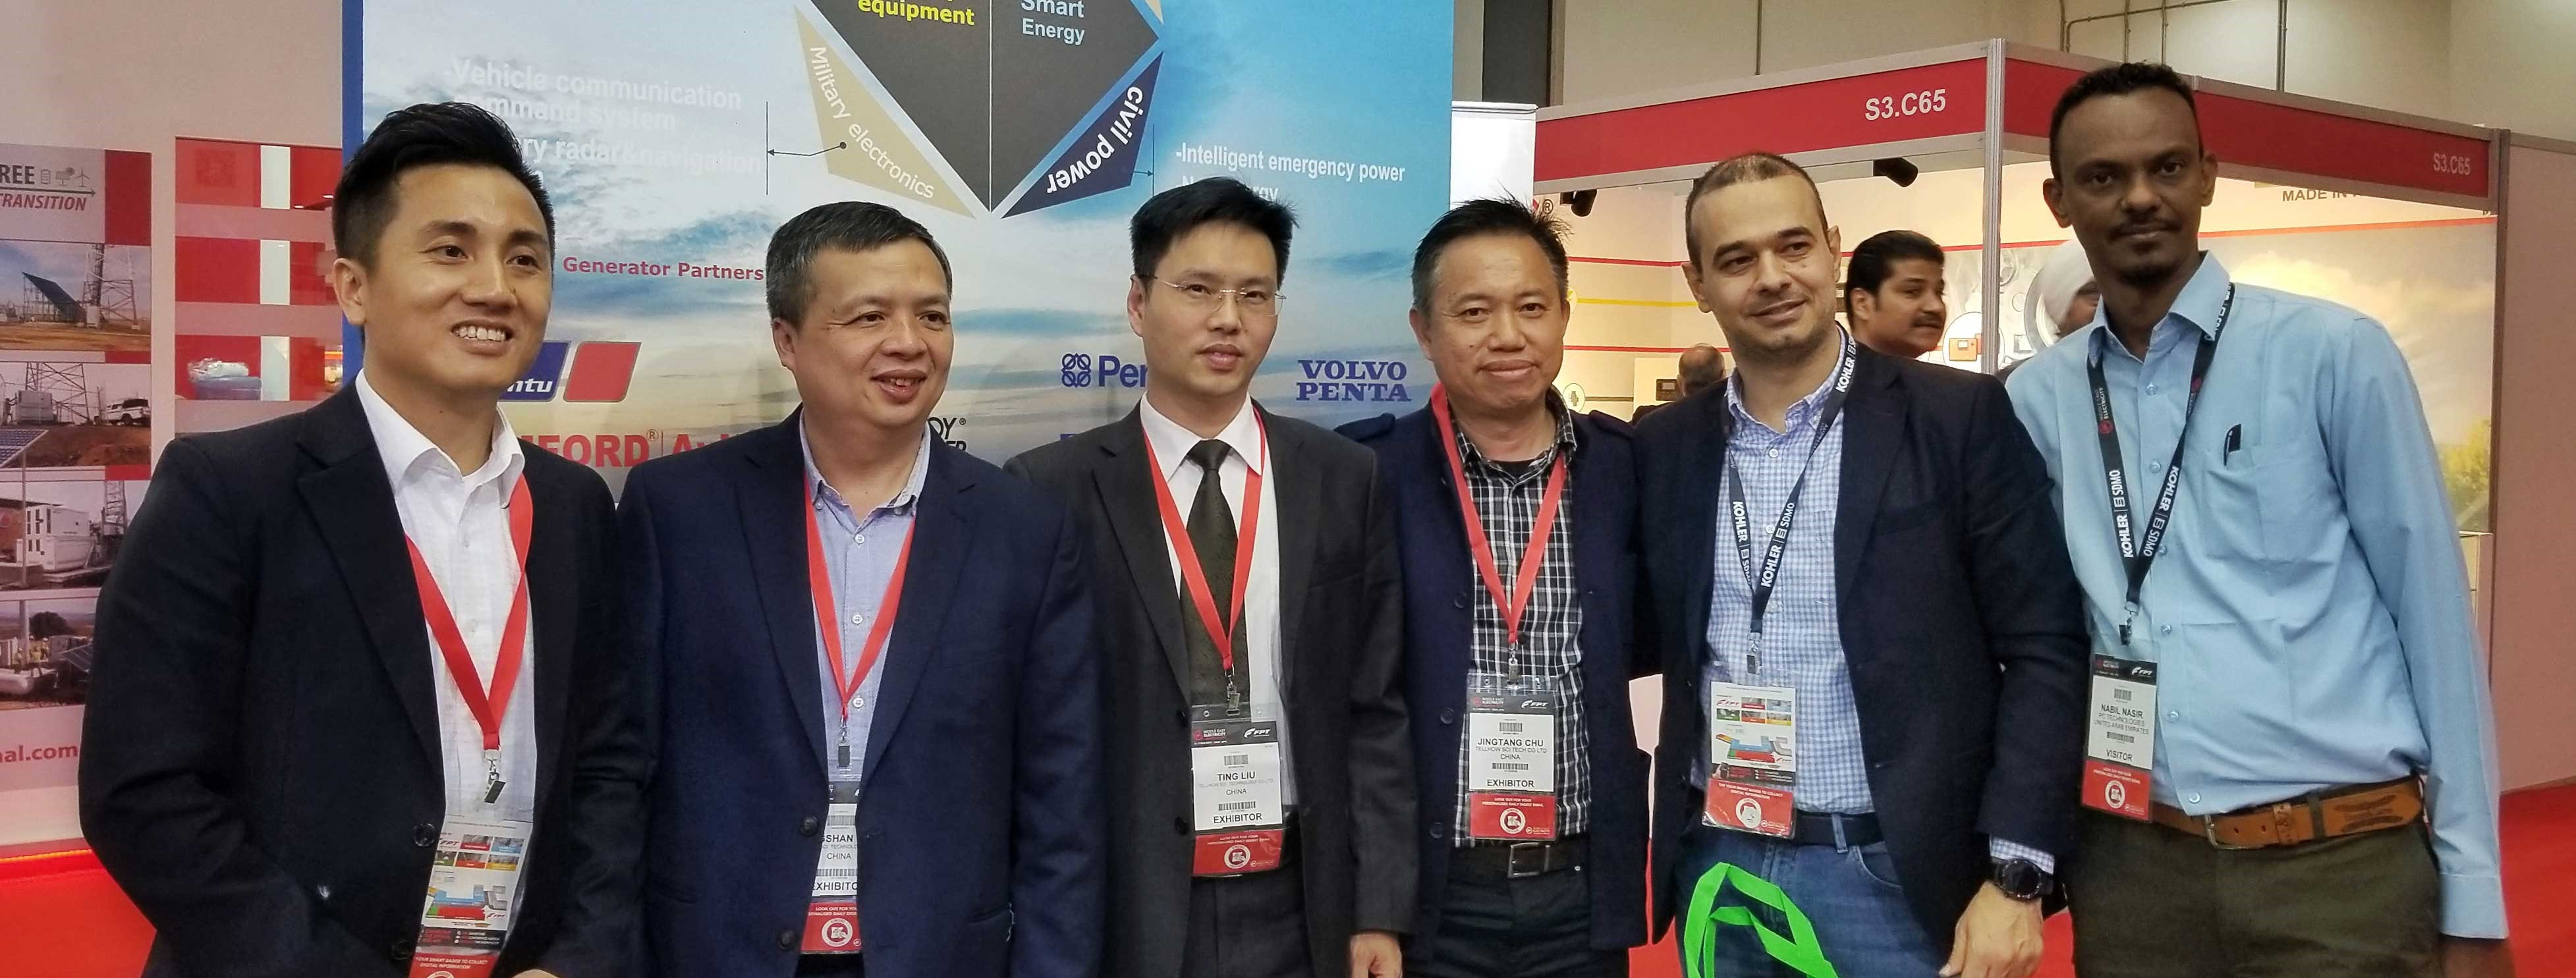 Middle East Electricity Exhibition (MEE) of 2019,Exhibition,NEWS,3TECH